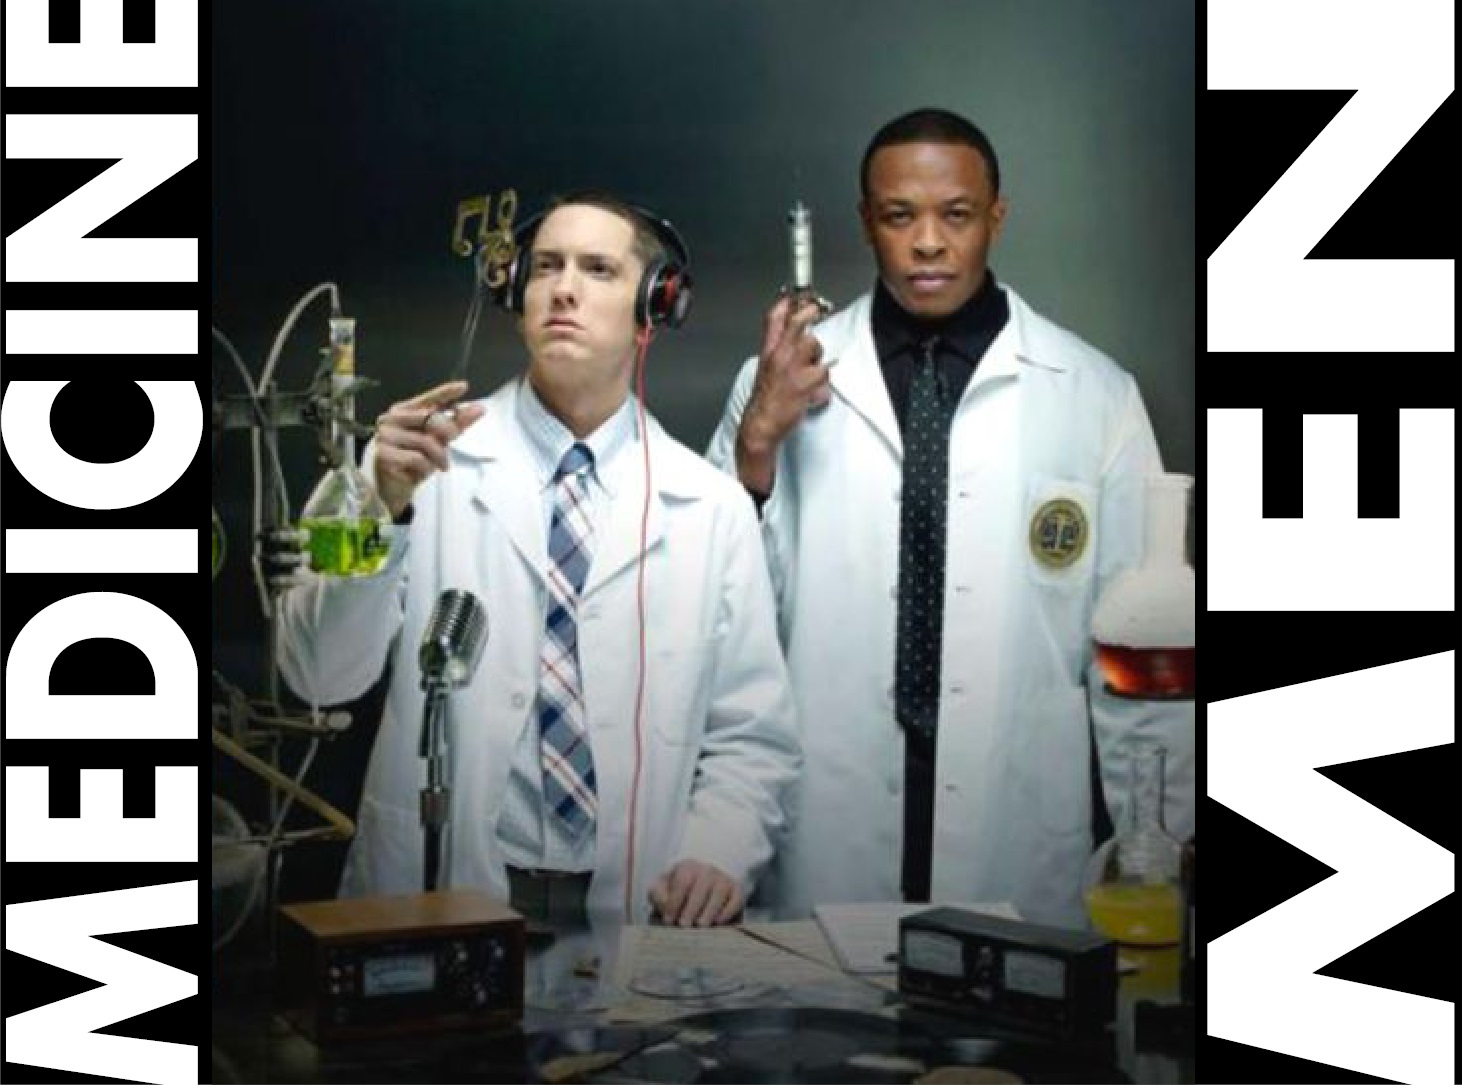 Eminem and Dr. Dre Medicine Man